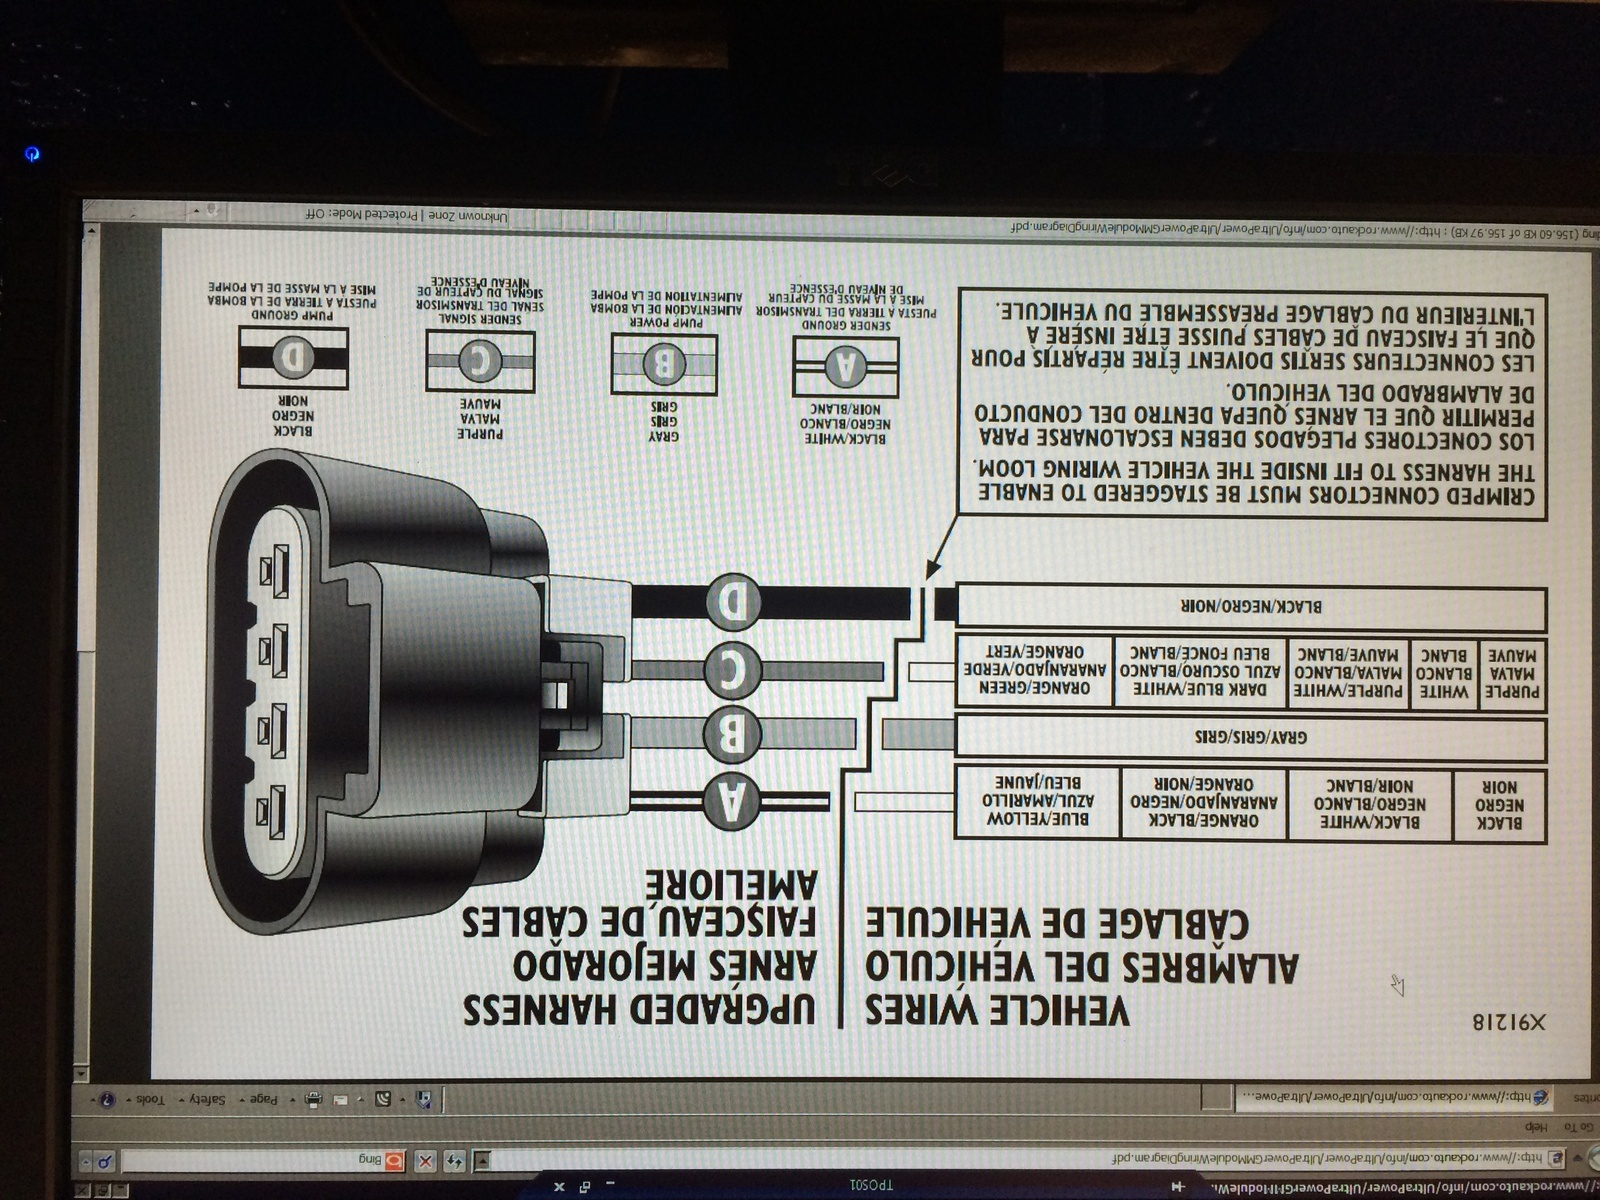 1998 Gmc Sierra 1500 Wiring Diagram Another Blog About 2000 Civic Fuse Panel Questions Fuel Pump Not Engaging On K1500 Rh Cargurus Com